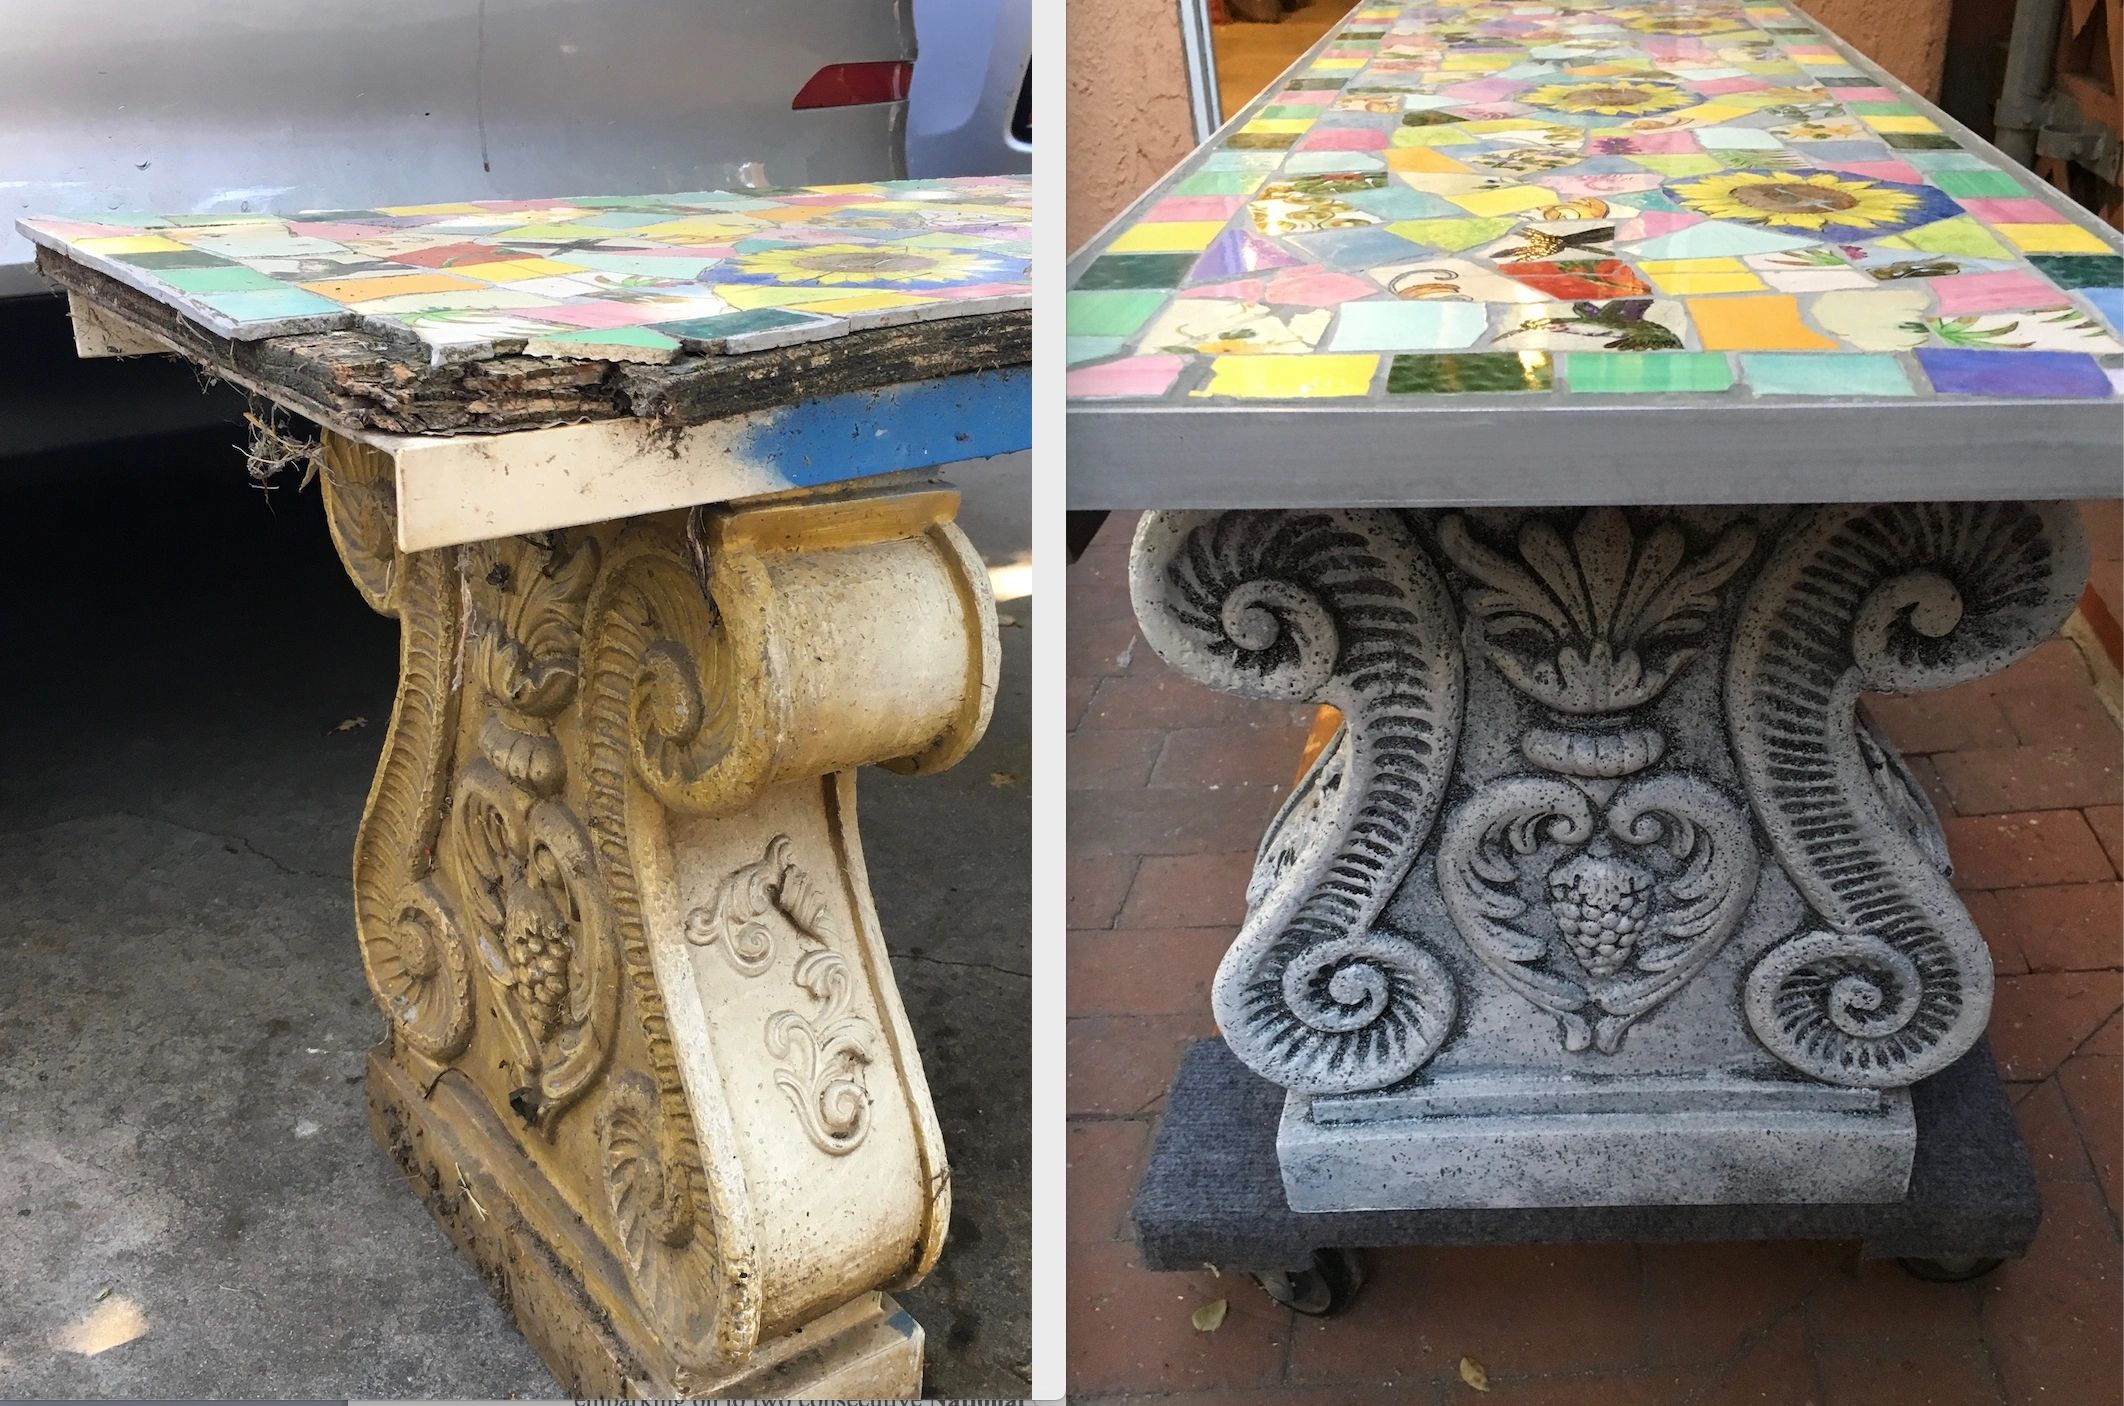 "{""blocks"":[{""key"":""nd5k"",""text"":""Repair of garden mosaic bench with custom aluminum border, replaced missing tiles, re-grouting and faux painting of plaster bases."",""type"":""unstyled"",""depth"":0,""inlineStyleRanges"":[],""entityRanges"":[],""data"":{}}],""entityMap"":{}}"